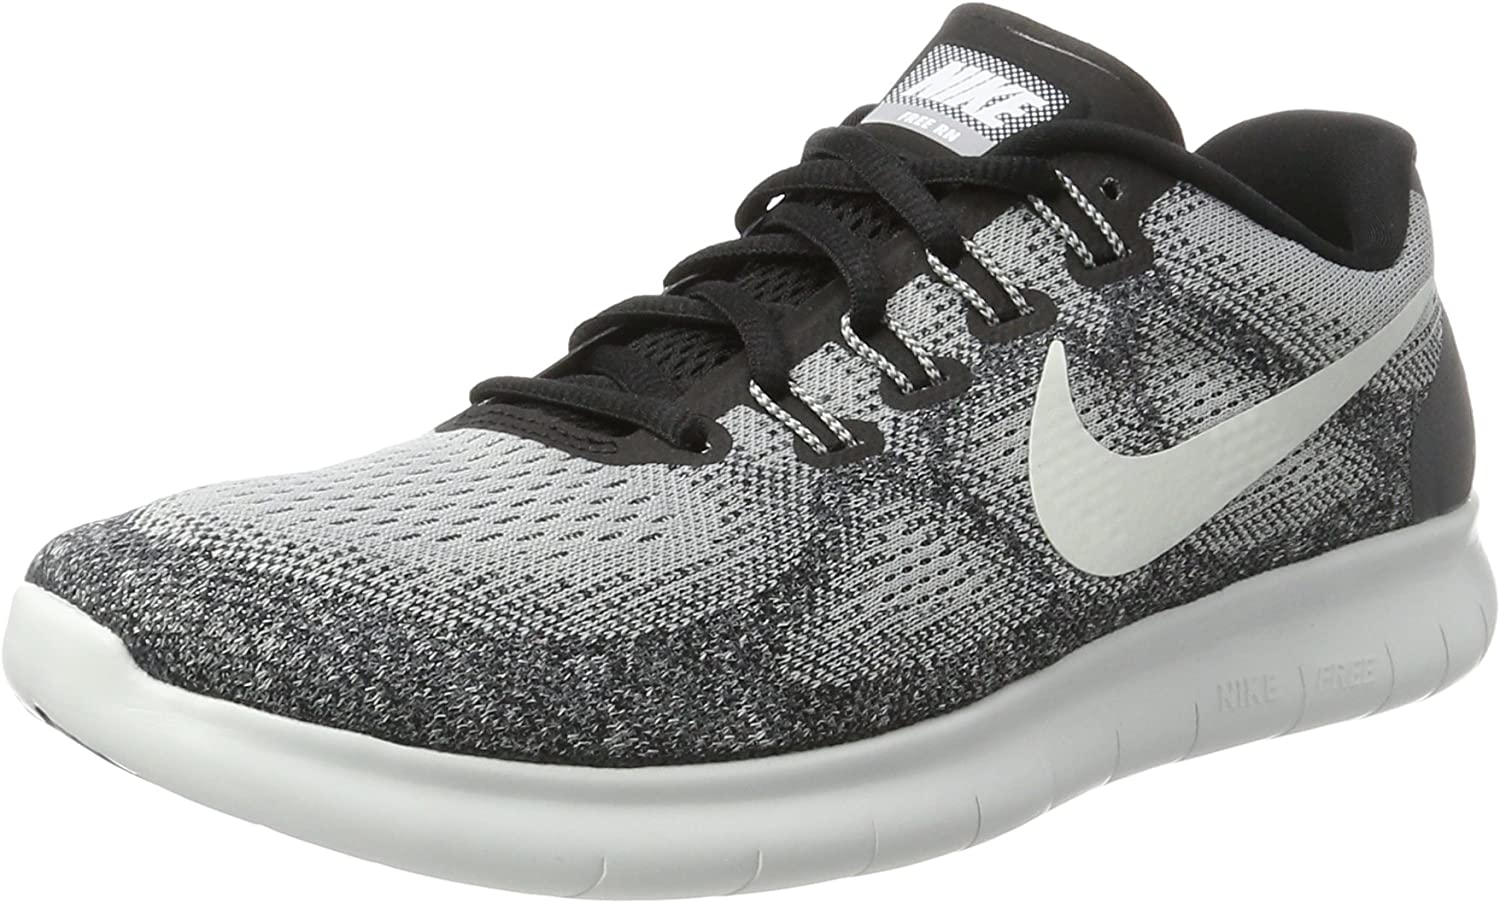 nuovo elenco up-to-date styling personalizzate Nike Men's Free 2017 Running Shoes: Amazon.co.uk: Shoes & Bags